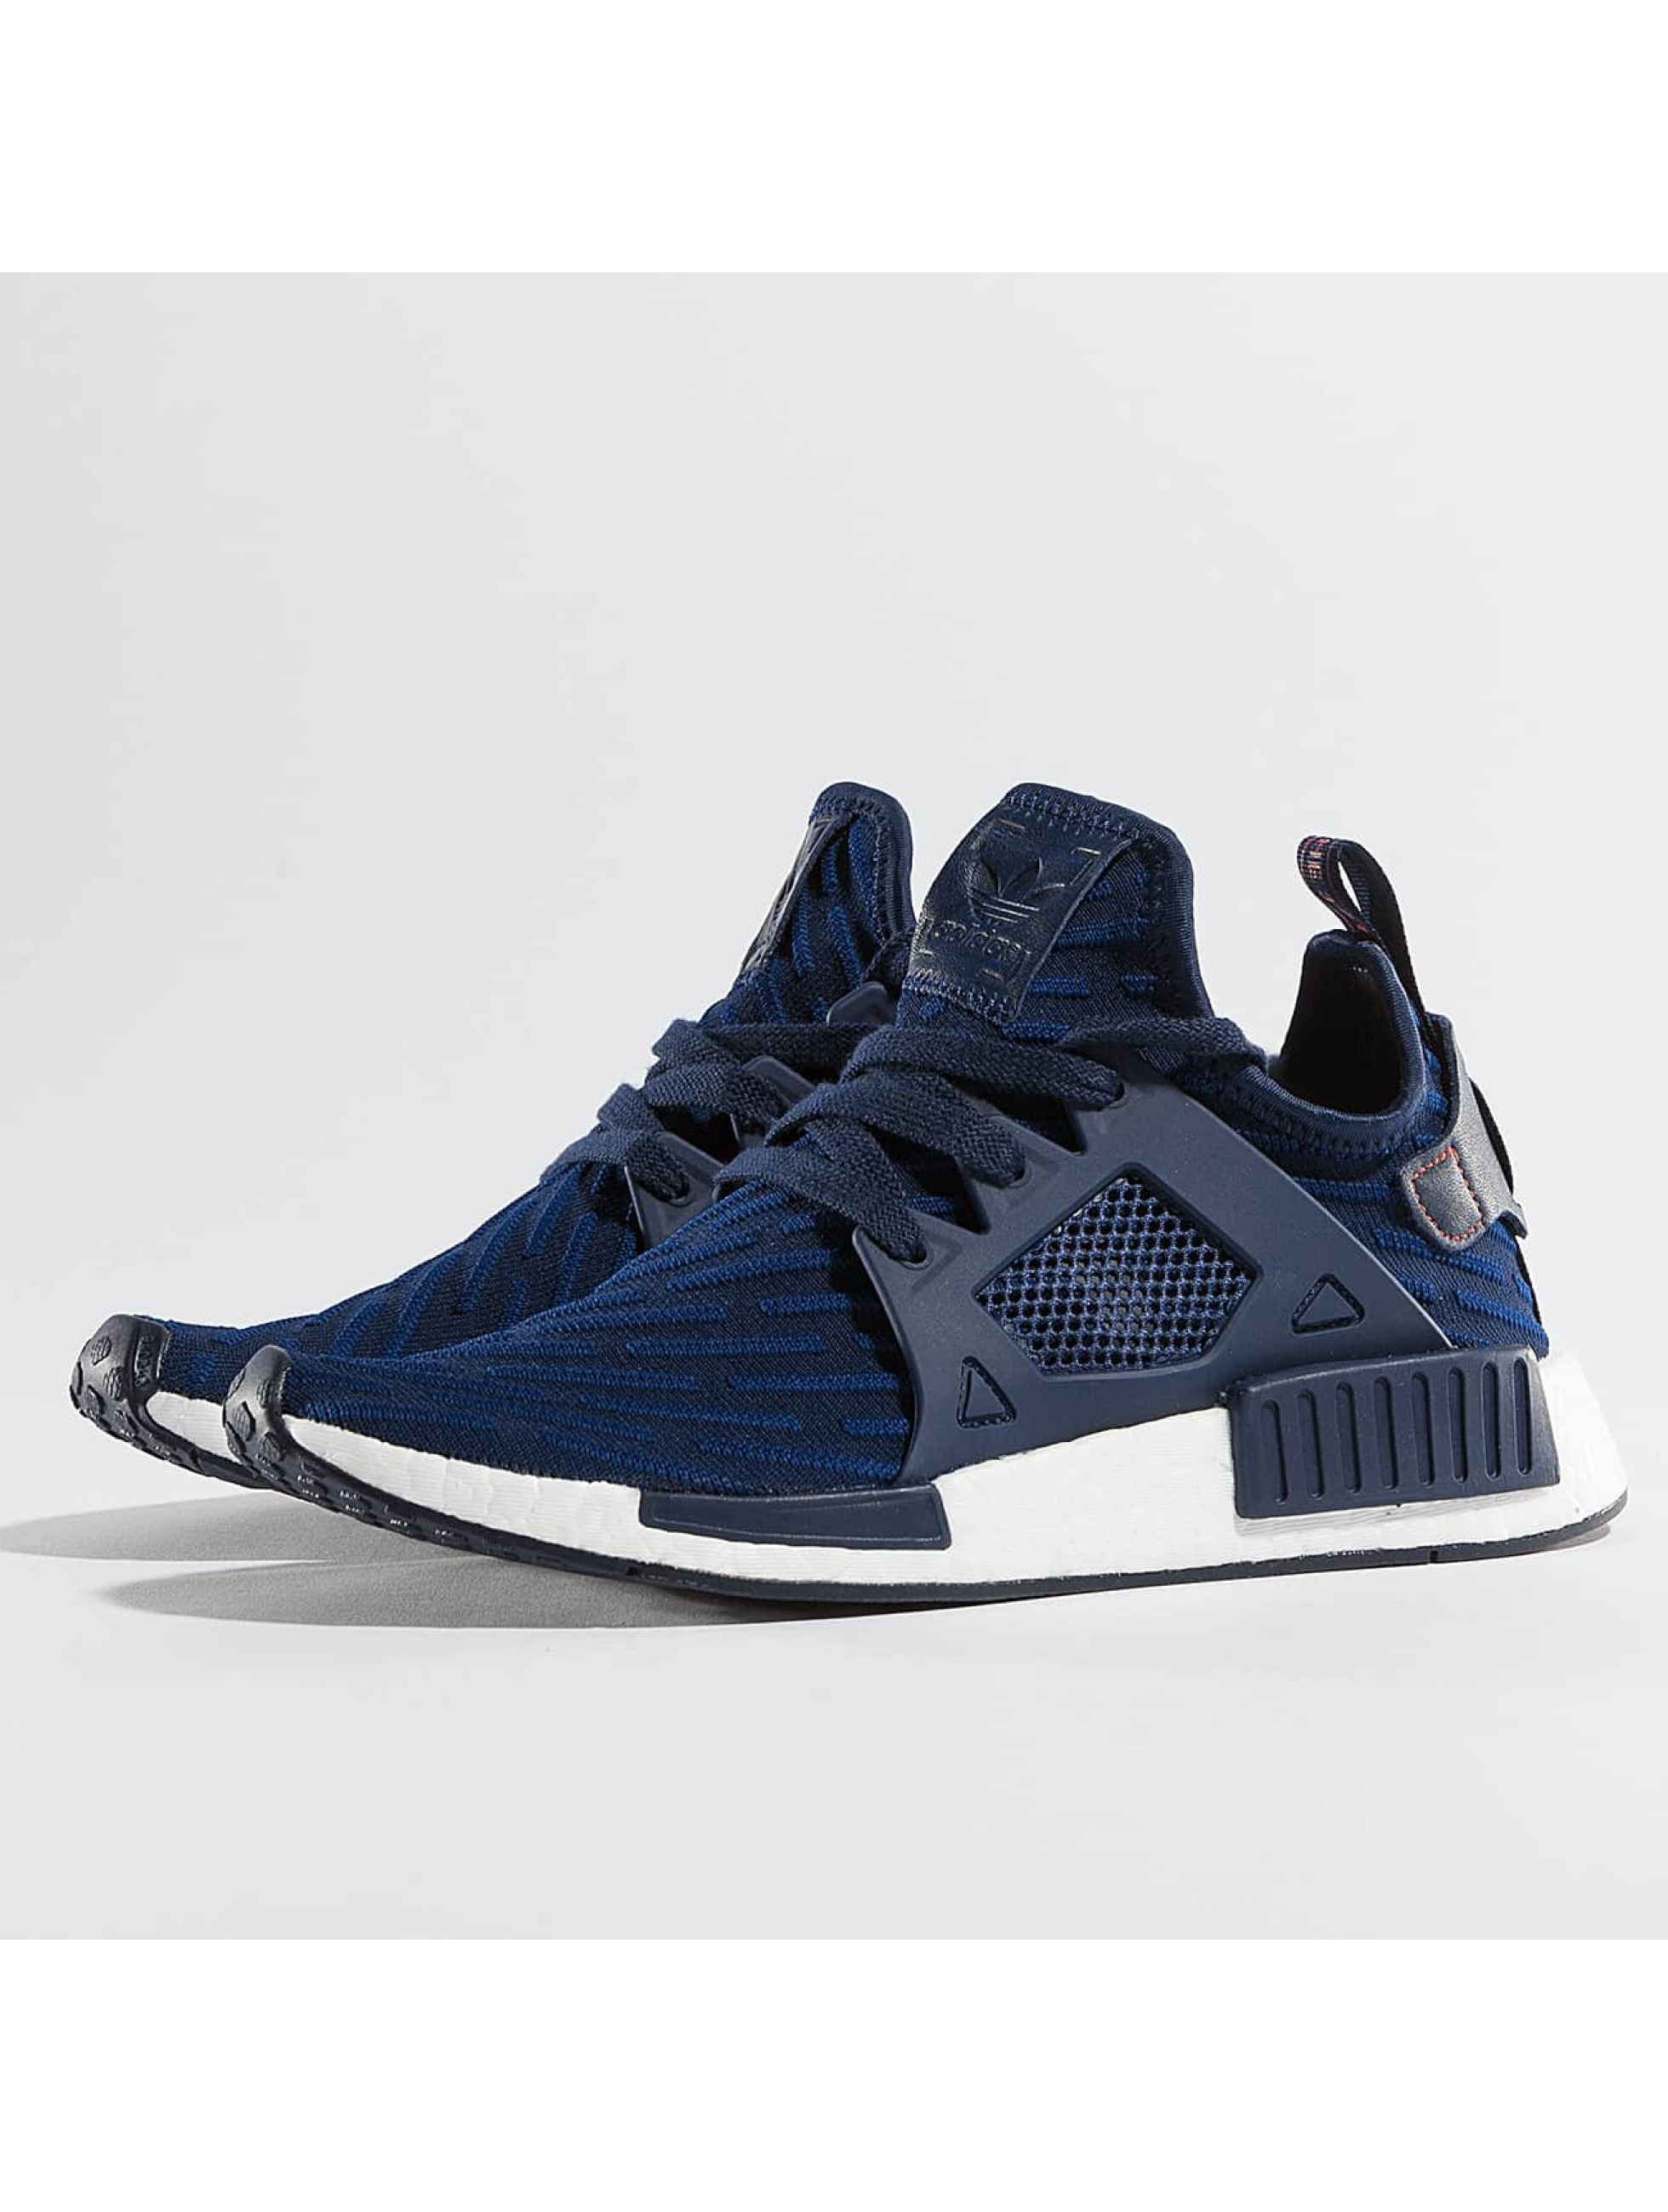 adidas damen sneaker nmd xr1 primeknit in blau 325439. Black Bedroom Furniture Sets. Home Design Ideas